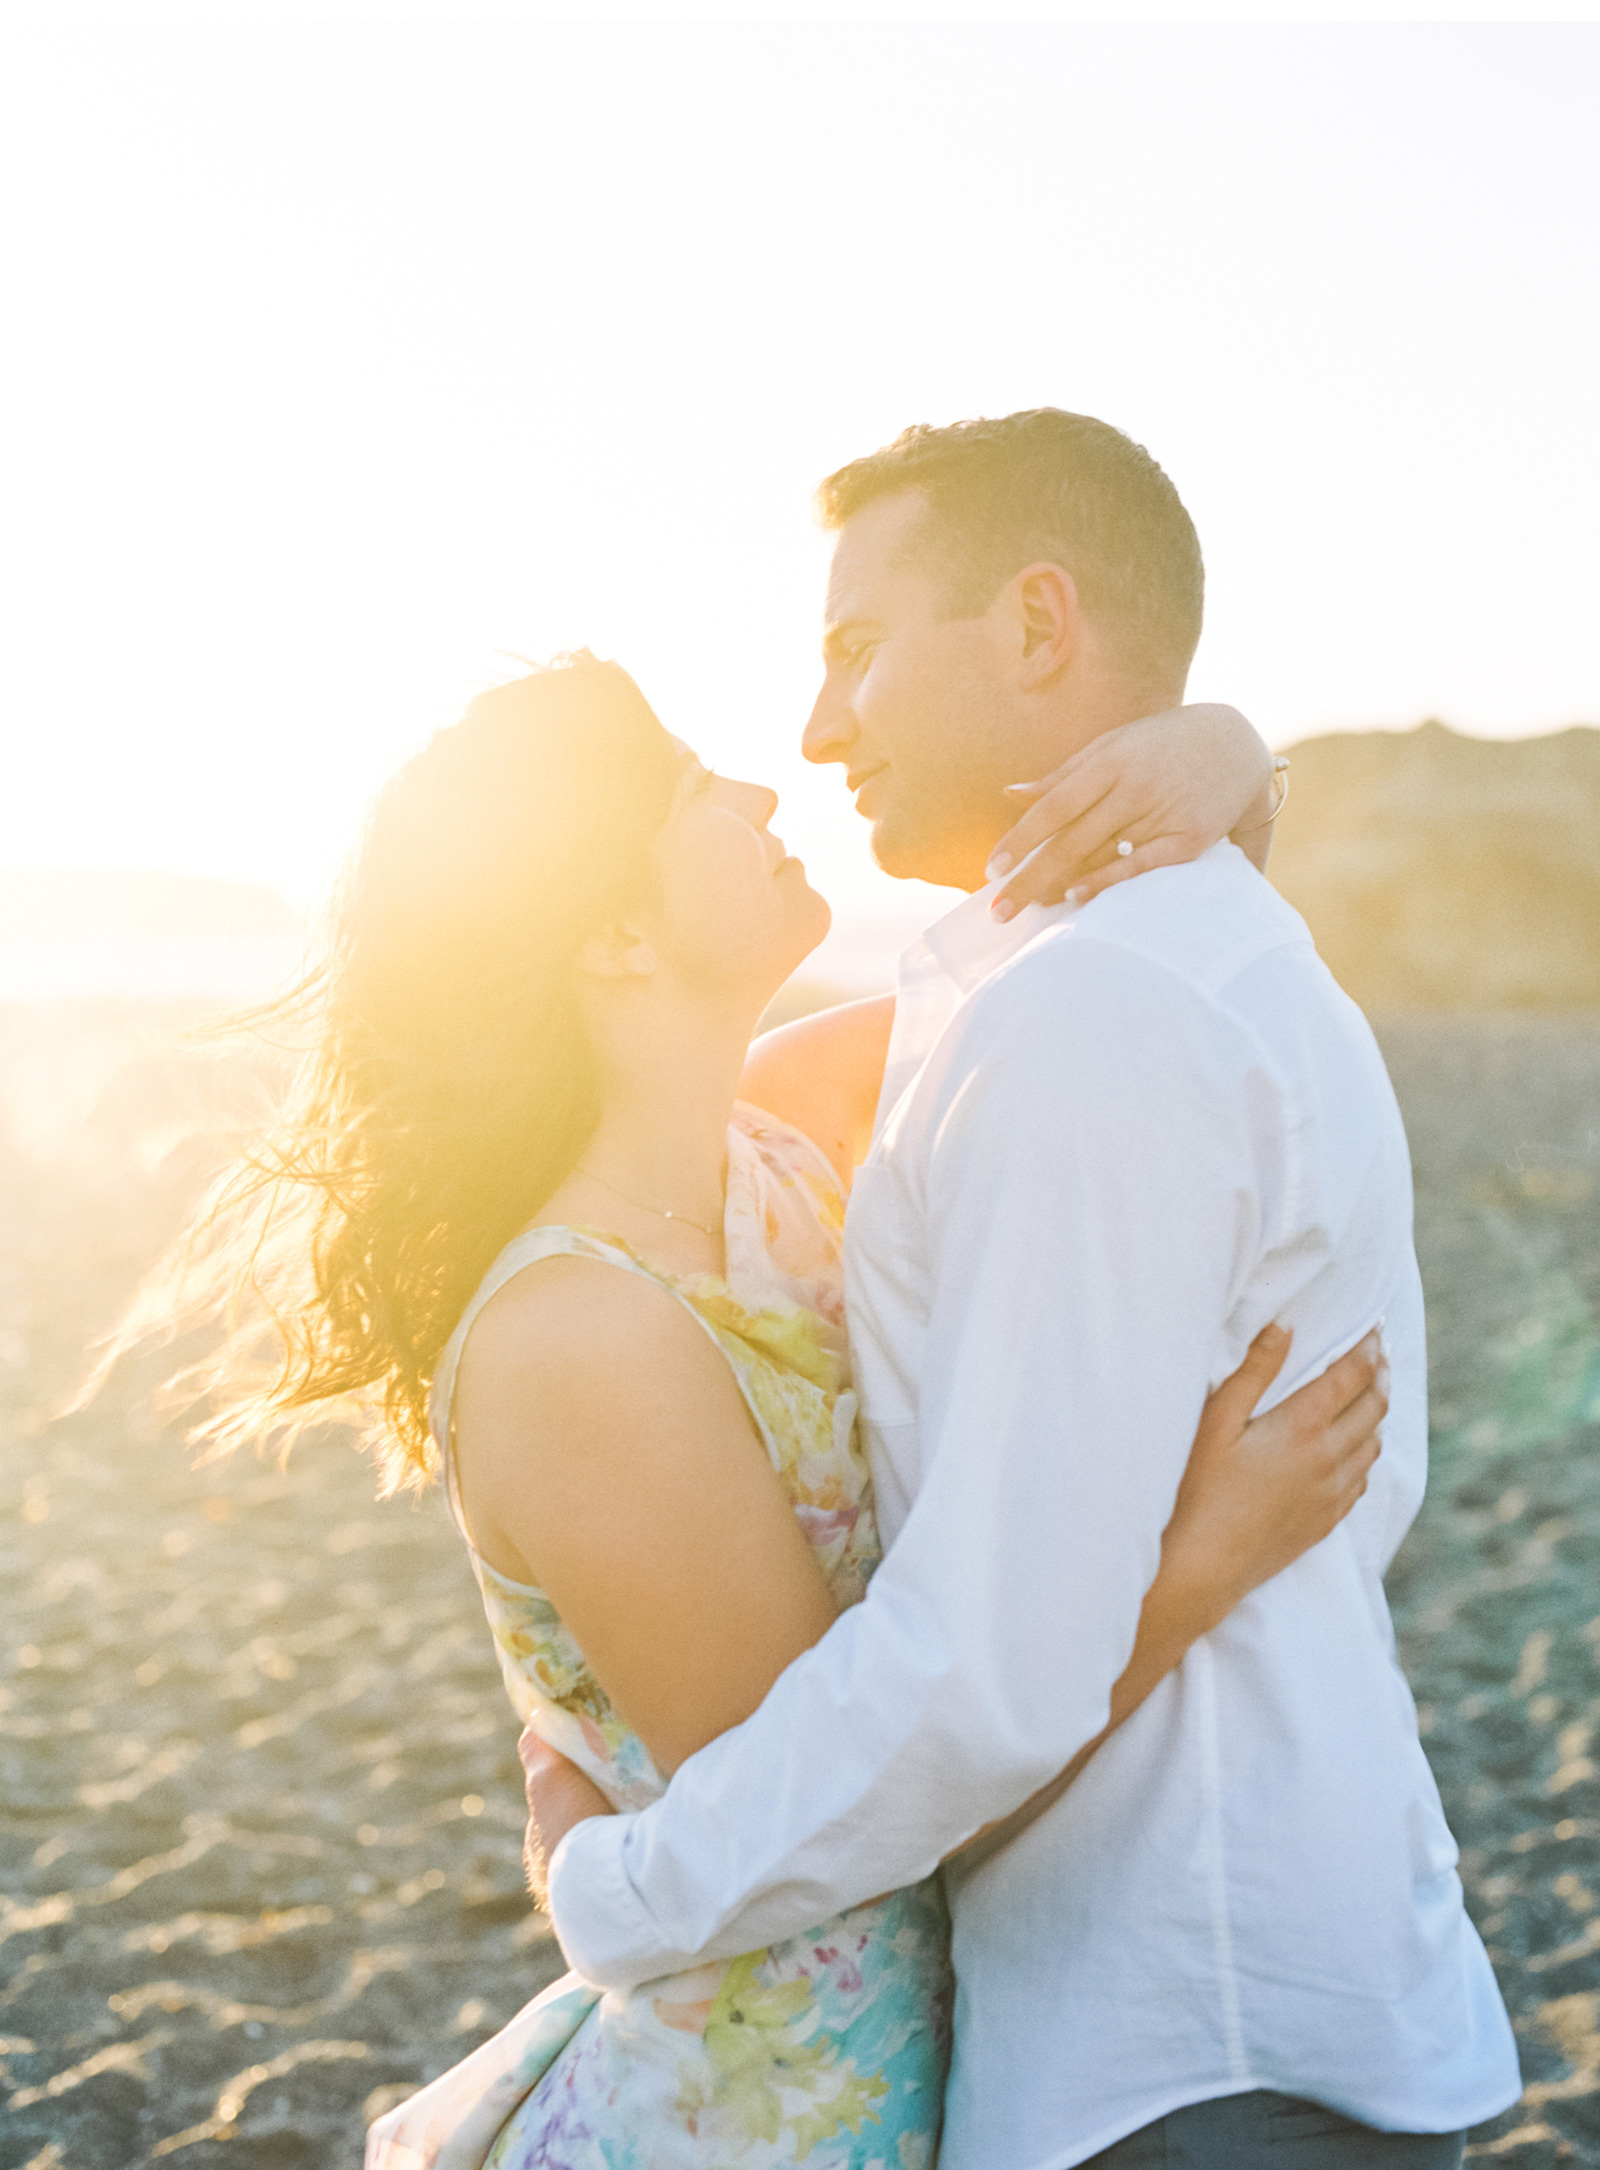 Natalie-Schutt-Photography-Malibu-Engagements-Malibu-Wedding-Beachside-Wedding-Fine-Art-Wedding-Photography-Southern-California-Brides_05.jpg